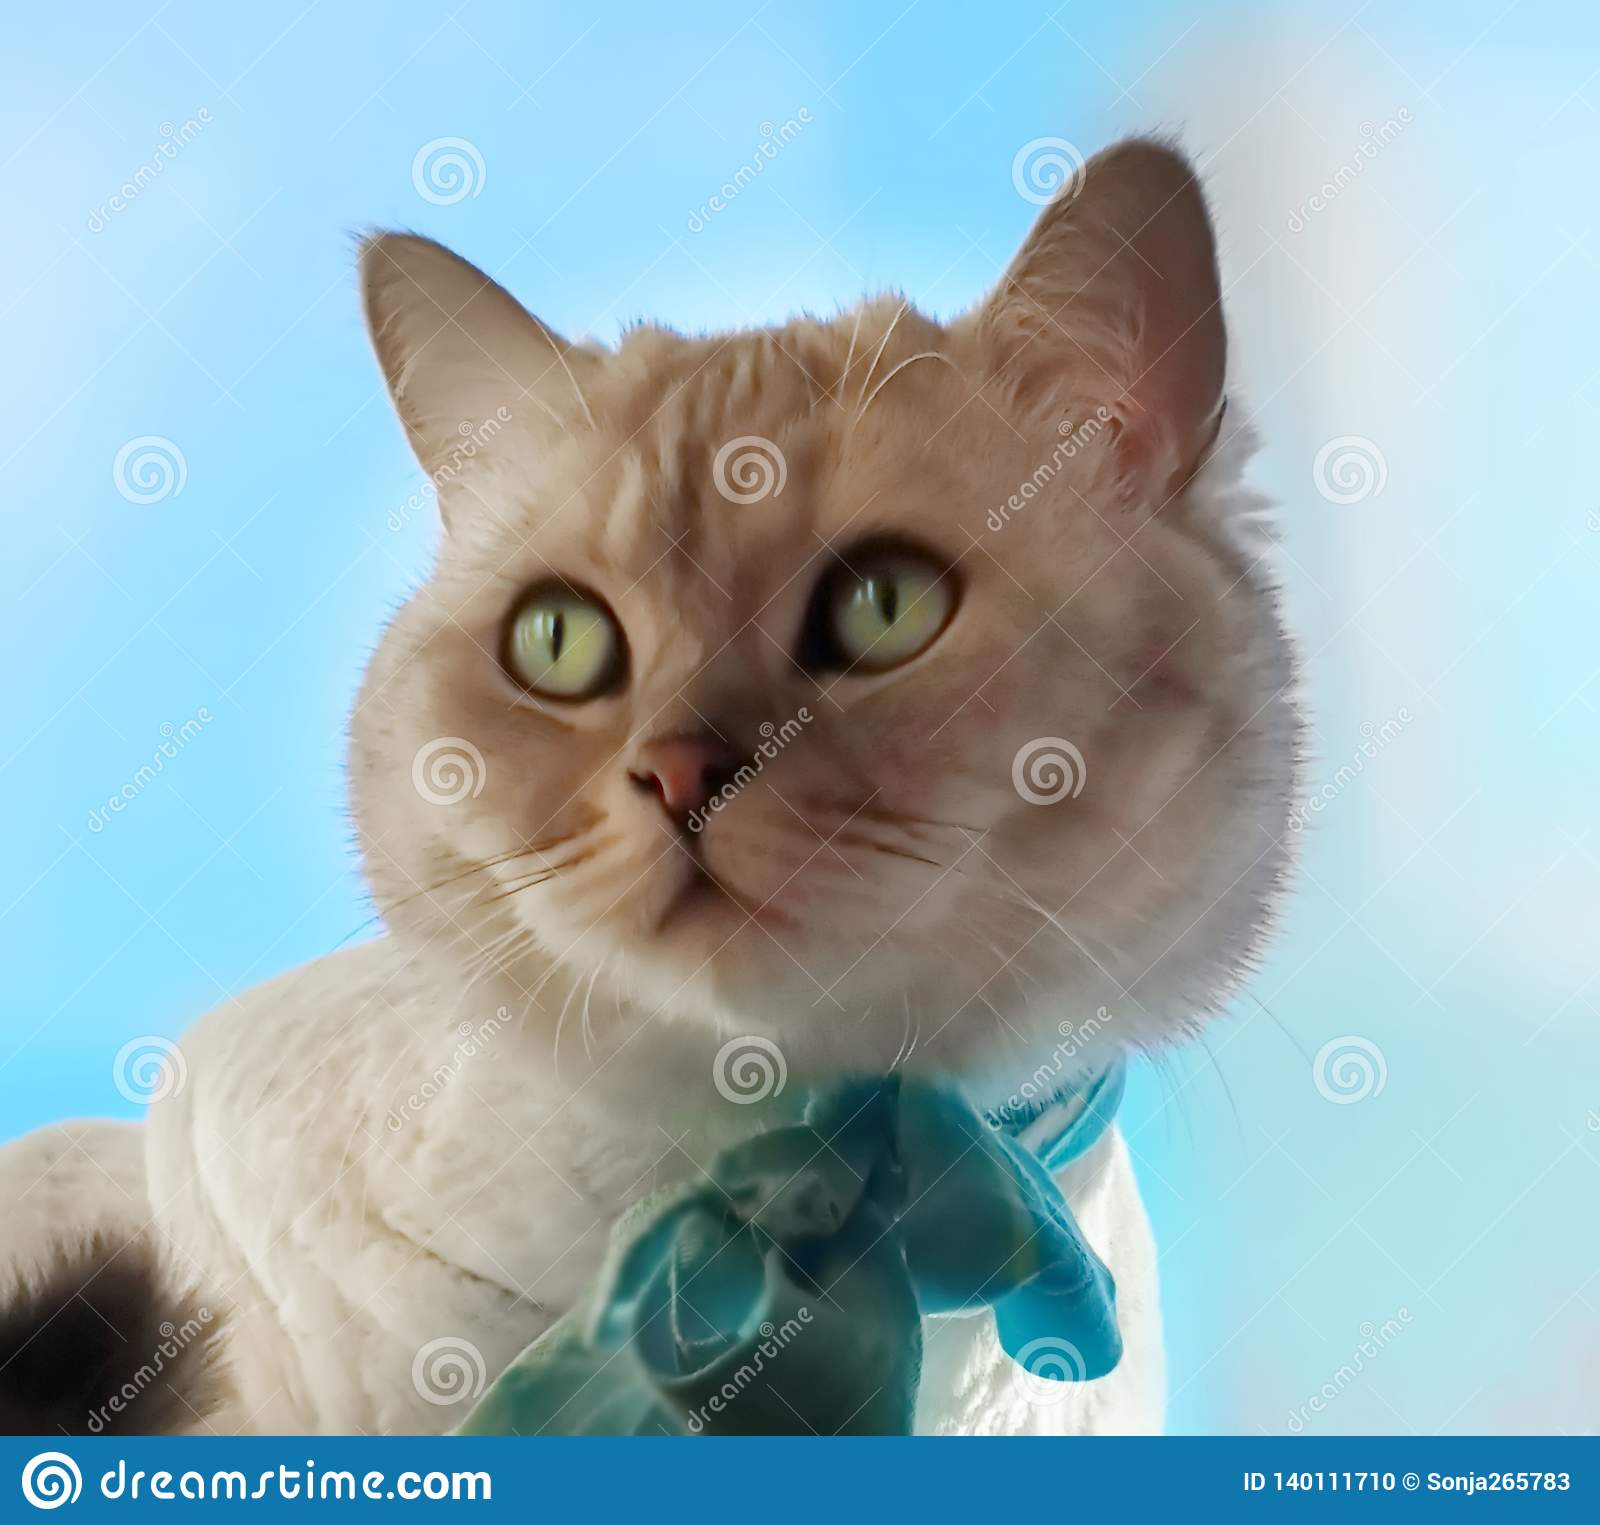 Cat Cute Funny British Cat white grey Cats Spring Cats